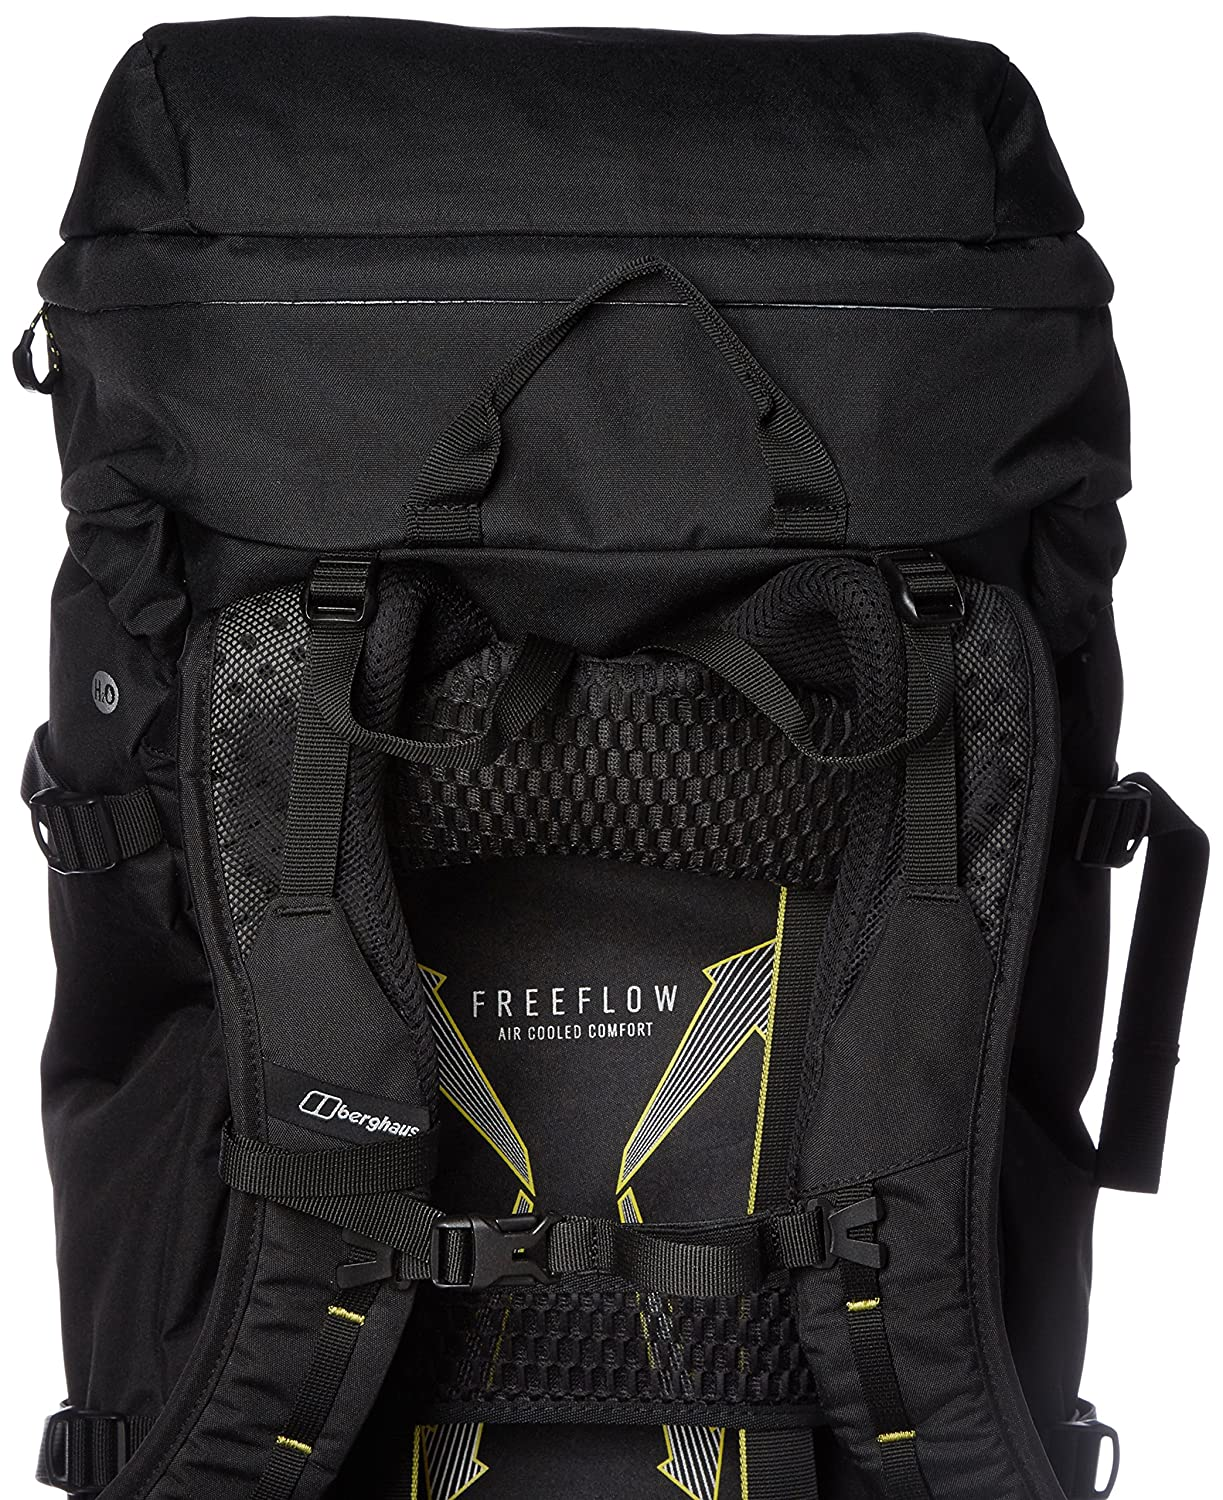 c2402d2819bf Berghaus Freeflow Outdoor Backpack available in Black Black - 40 Litres   Amazon.co.uk  Sports   Outdoors